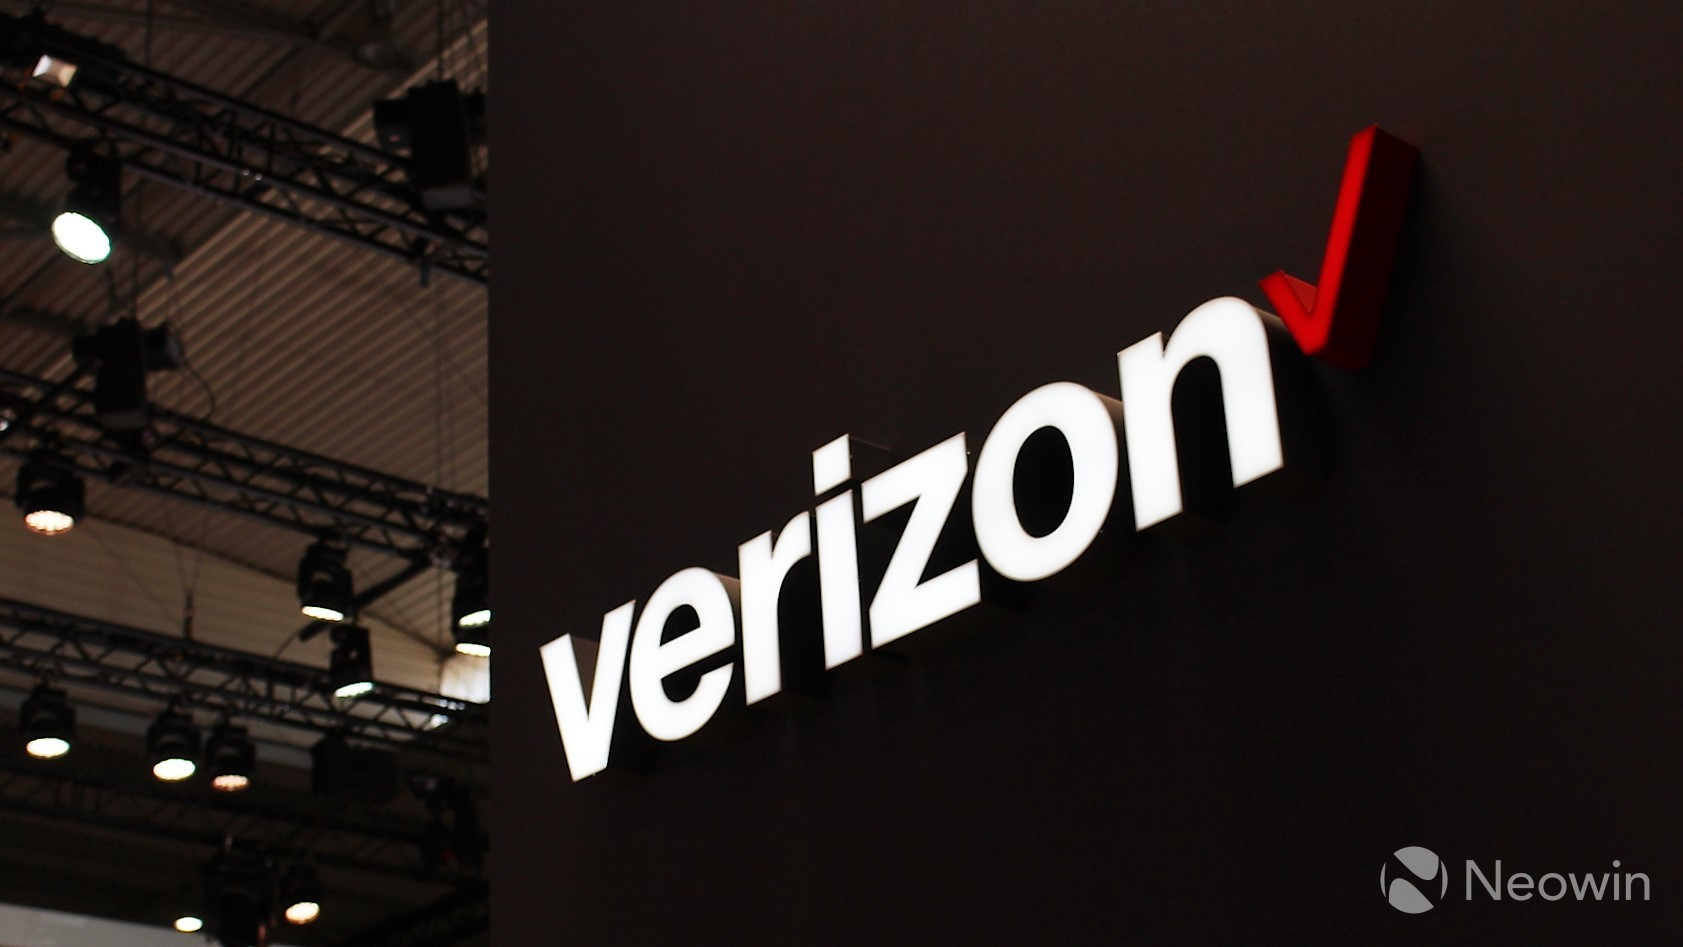 Verizon will finally offer a true unlimited plan with no speed caps